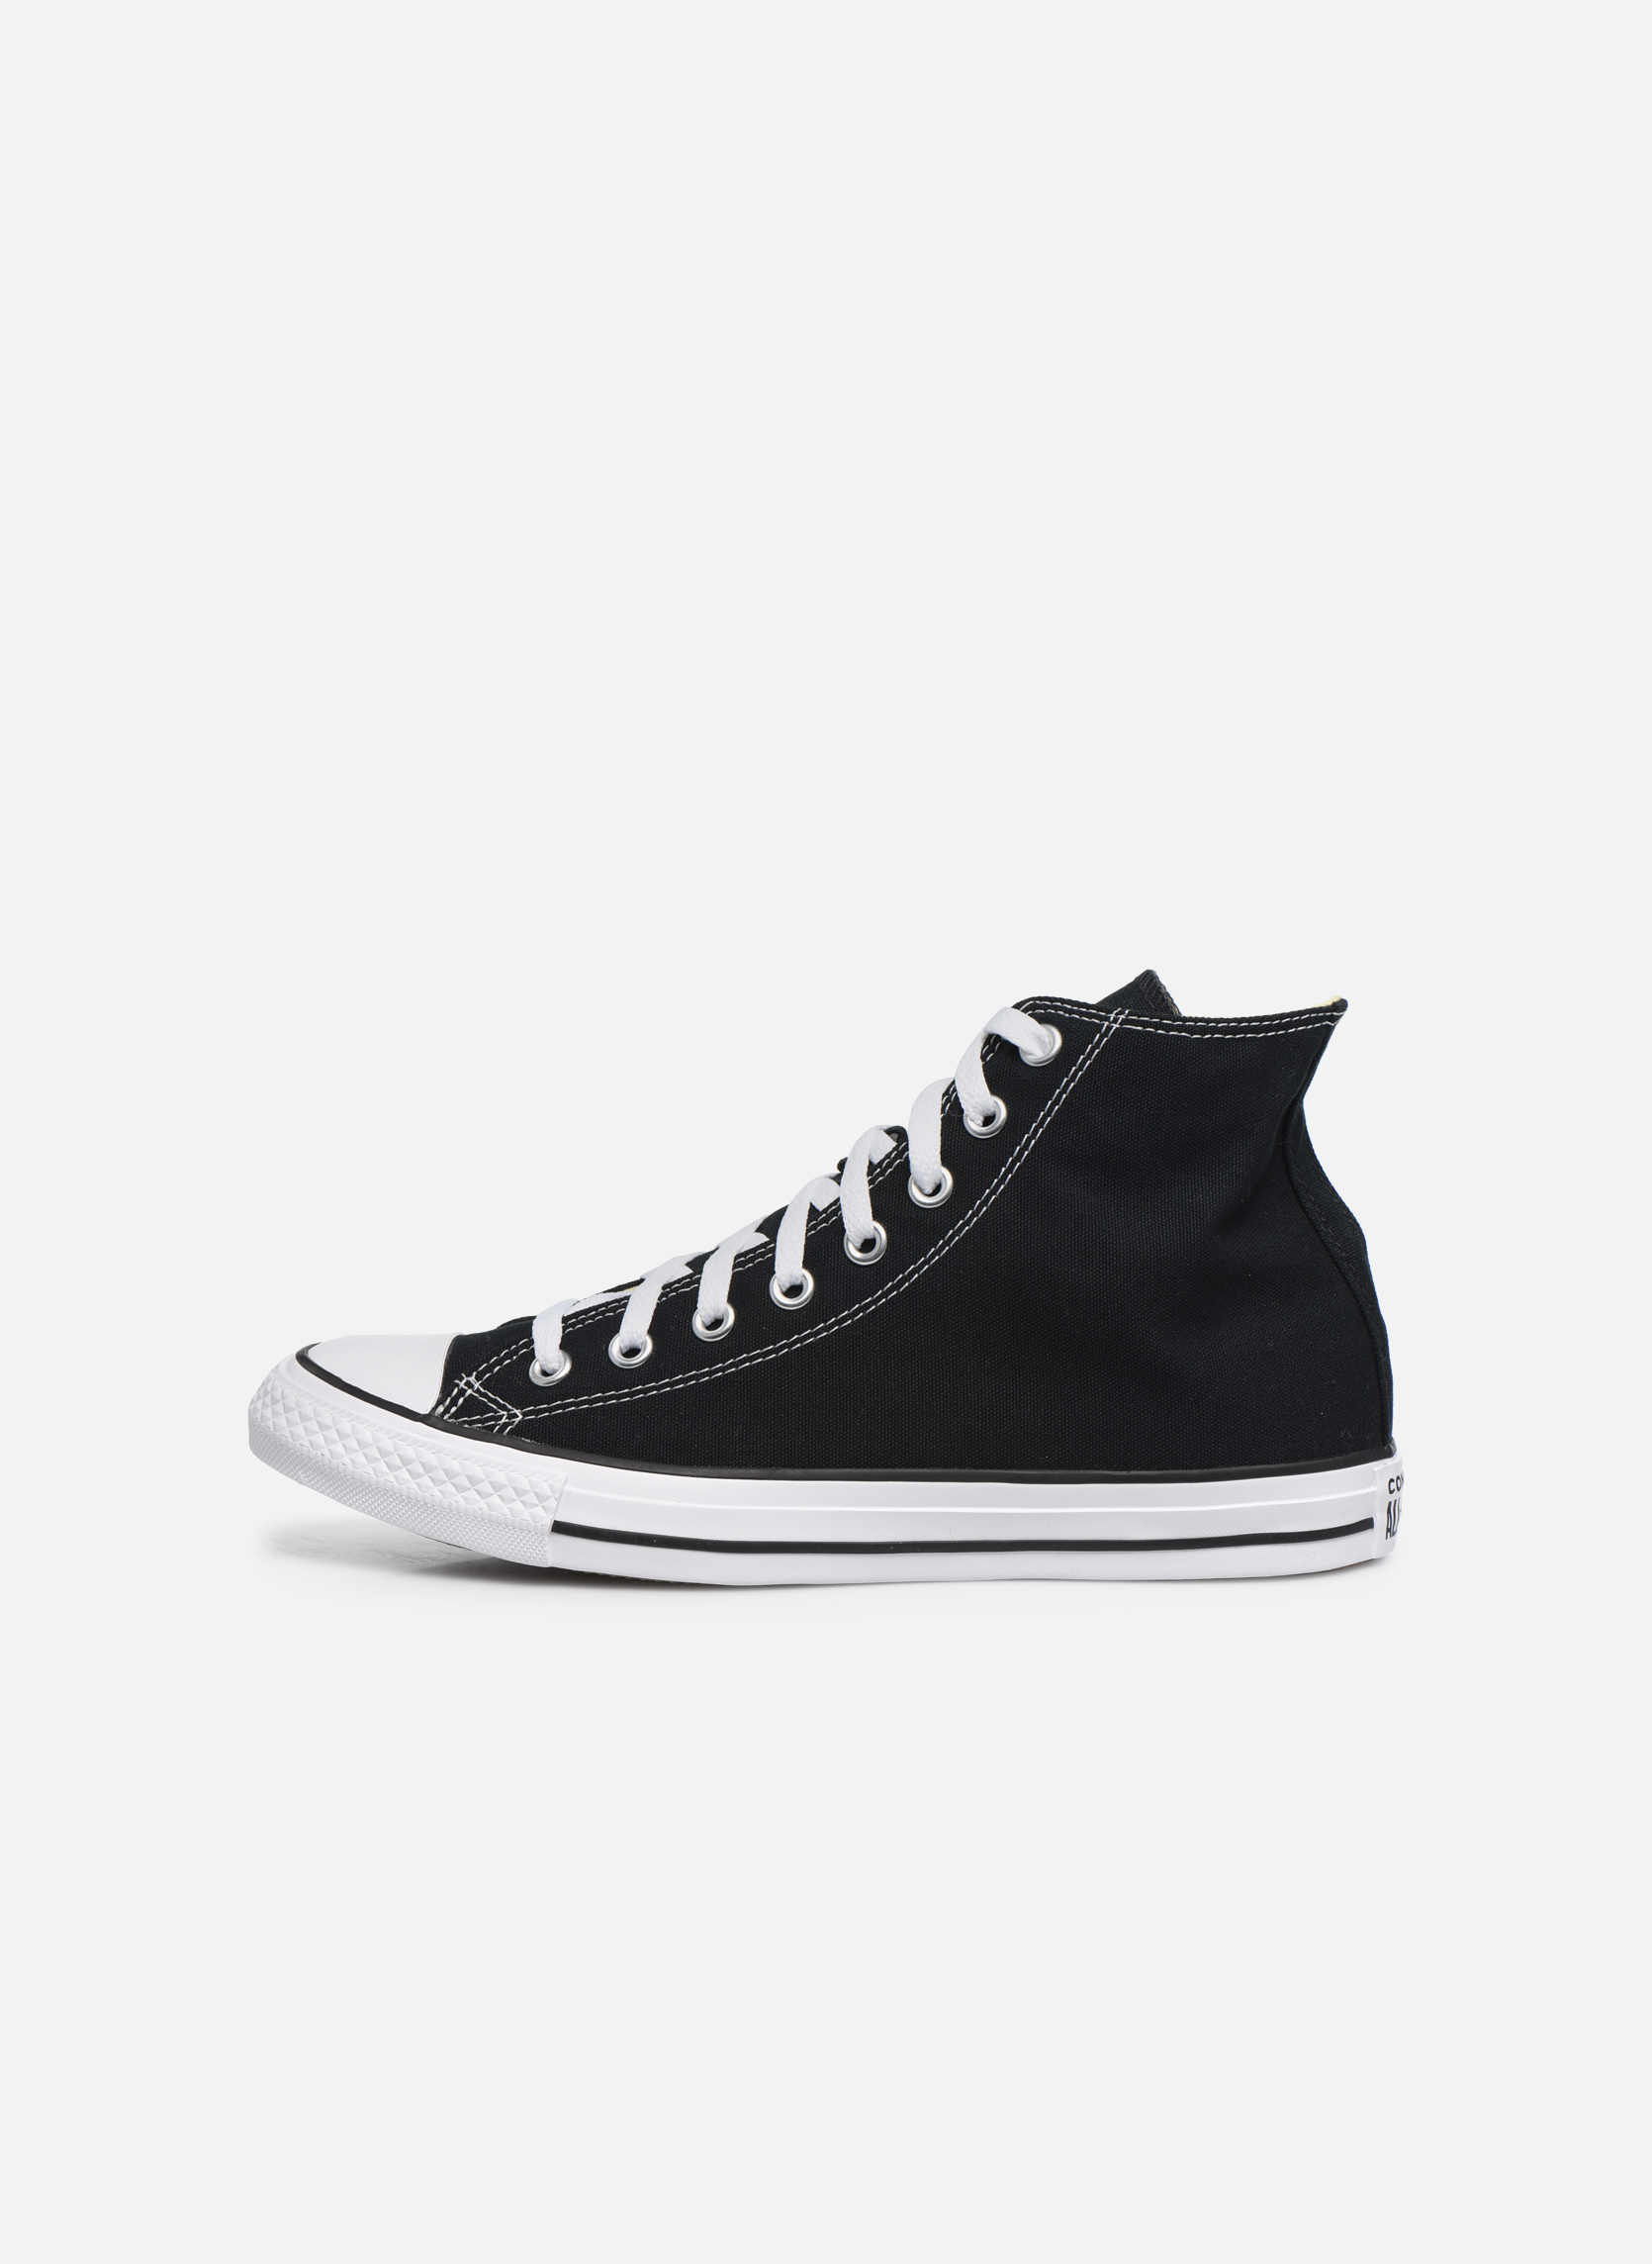 converse taille 24 pas cher